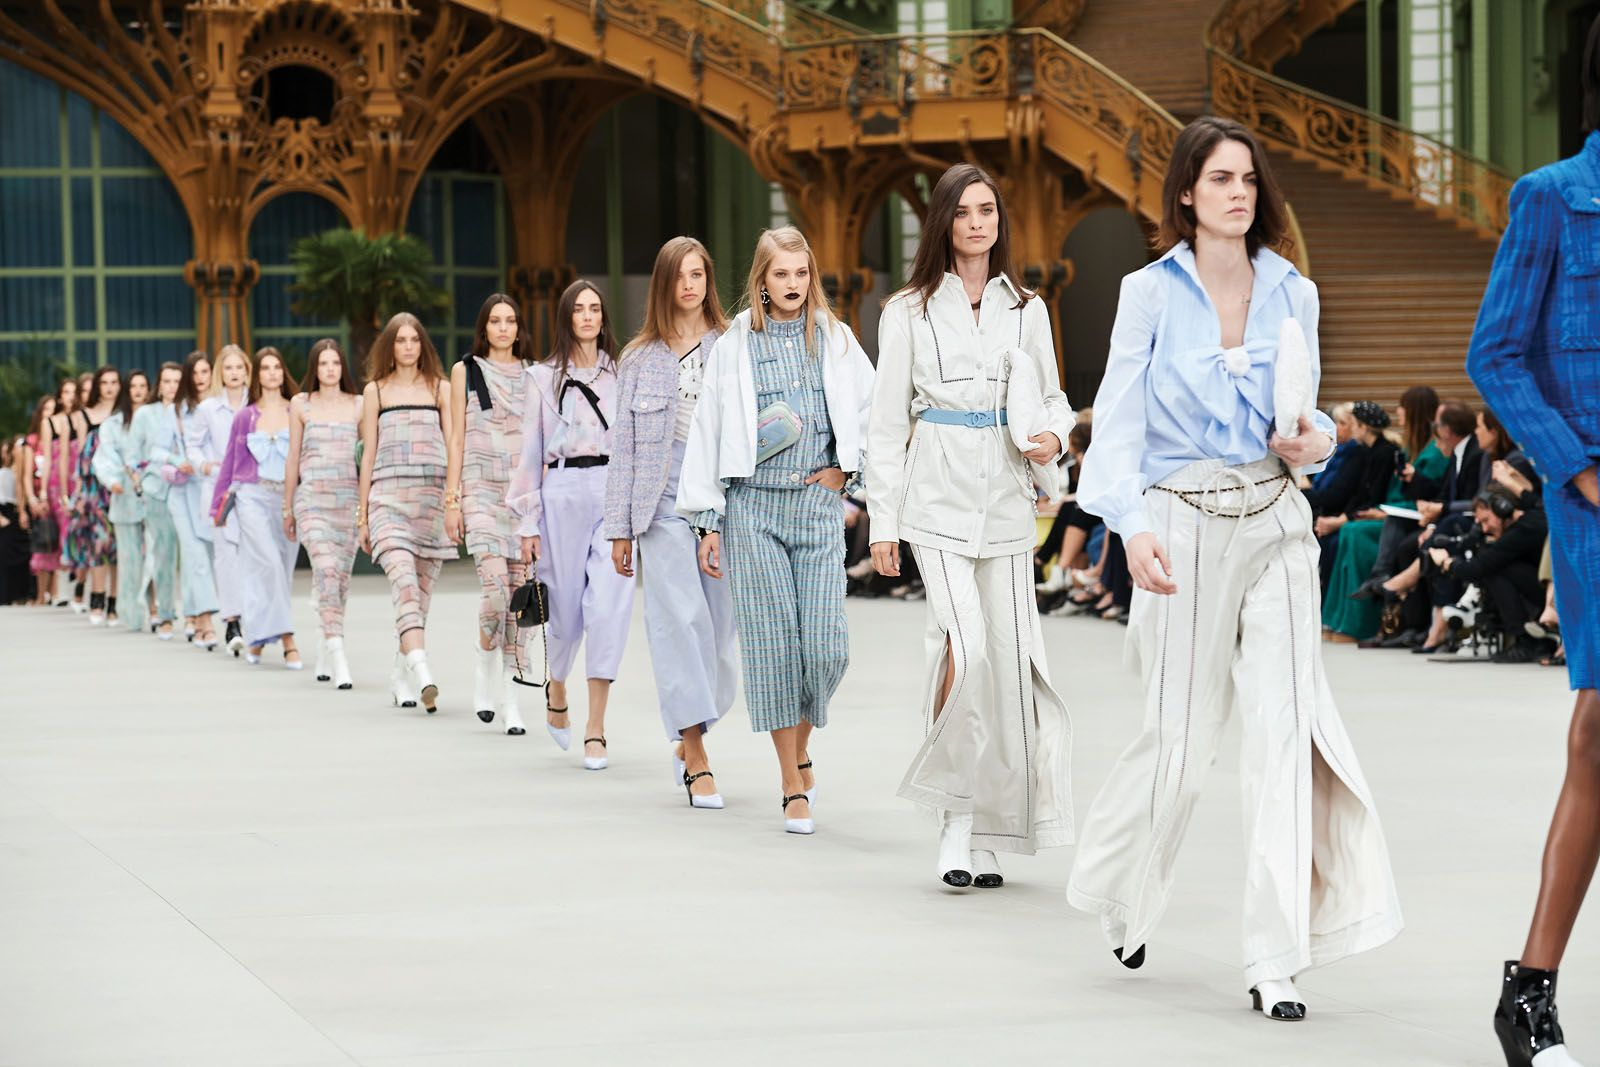 From New York To Rome: The Most Unforgettable Locations Where Luxury Fashion Houses Held Their Cruise 2020 Collections